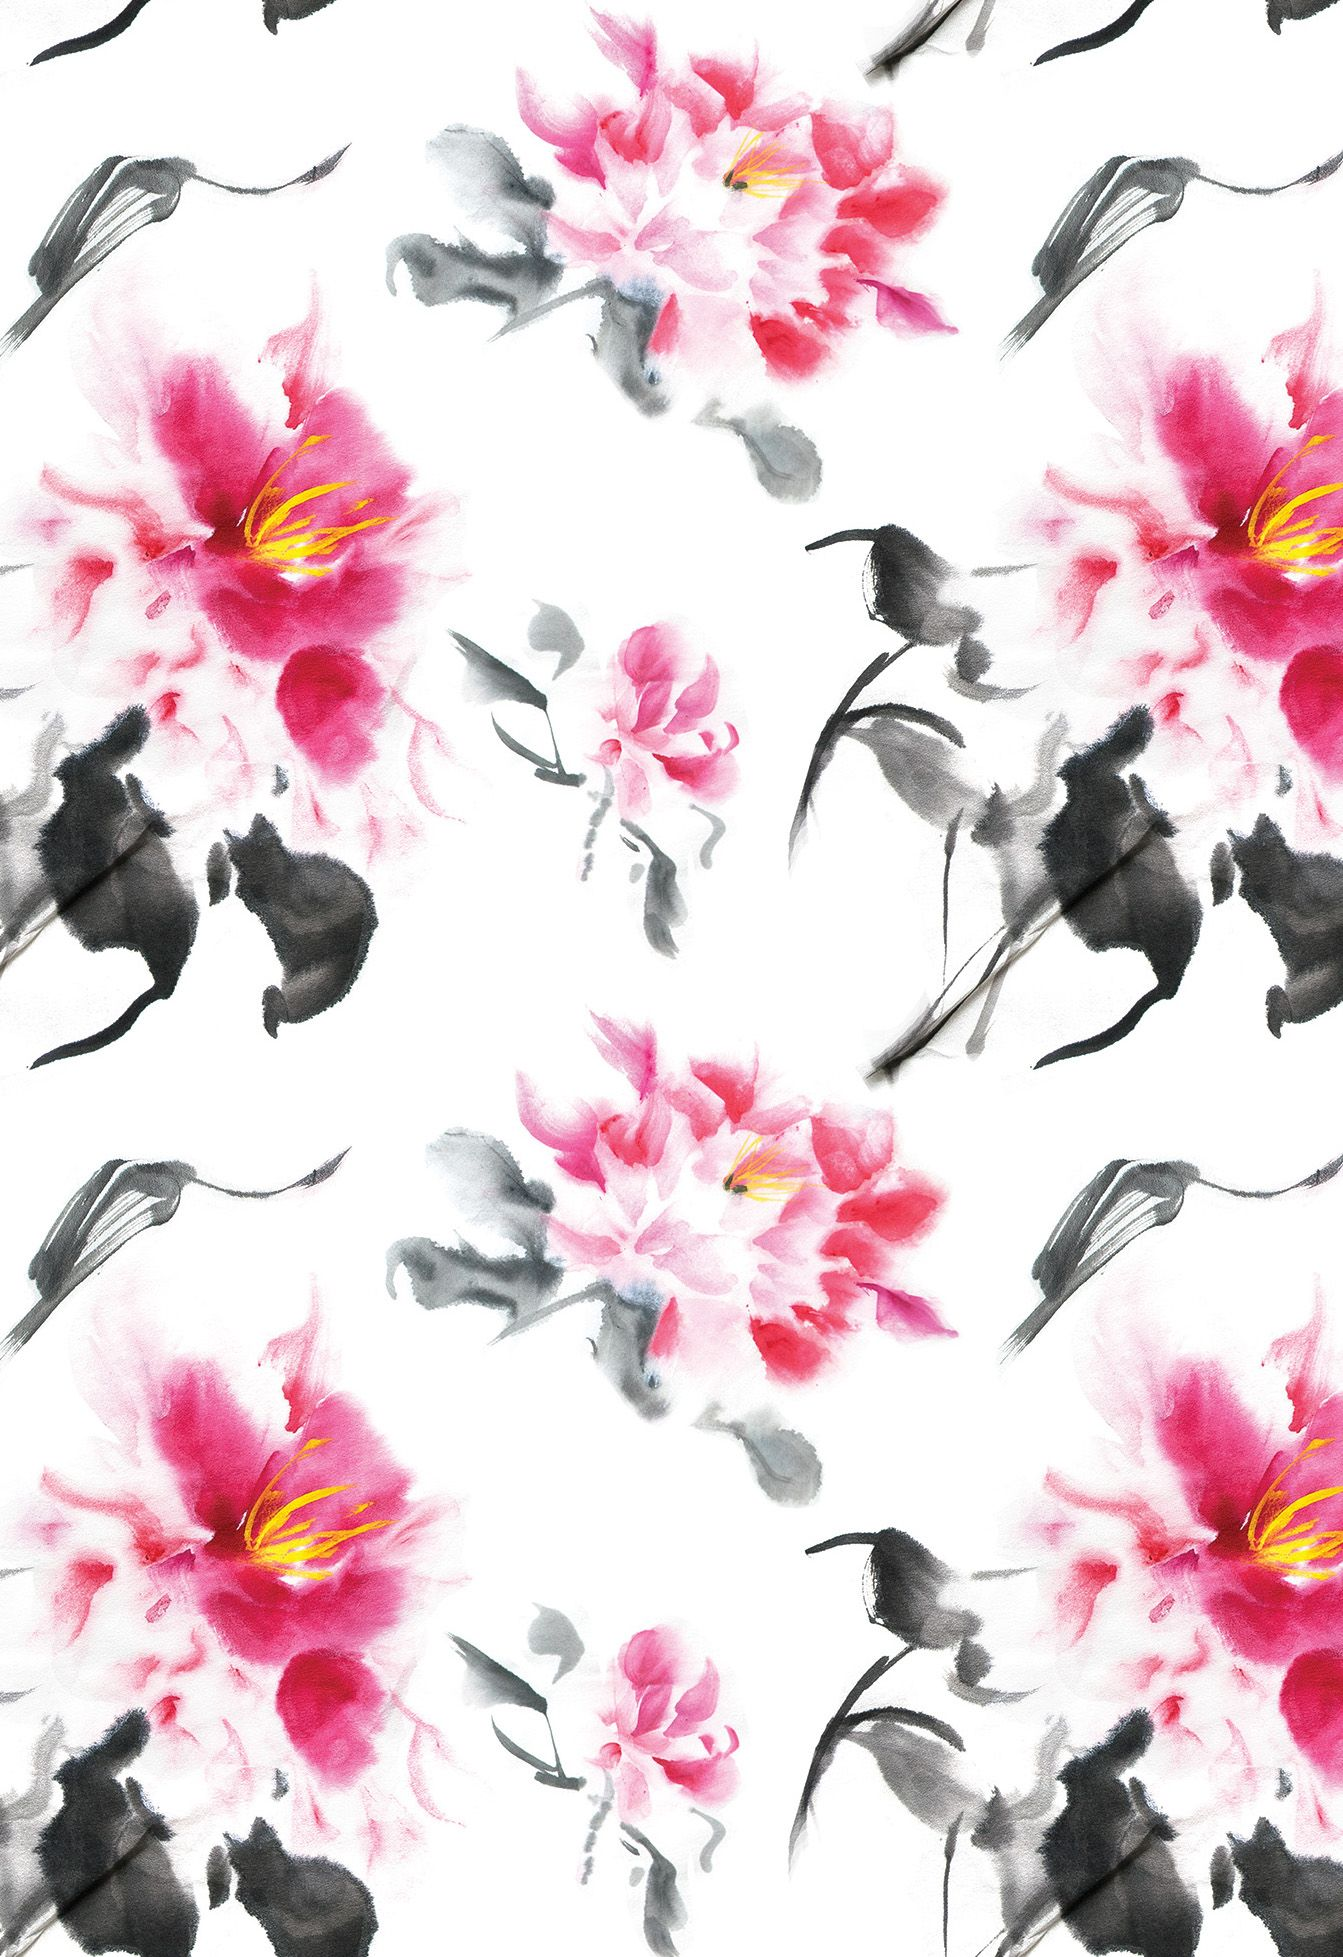 Peonies Floral Wallpaper Mural Floral Glory On A Grand Scale